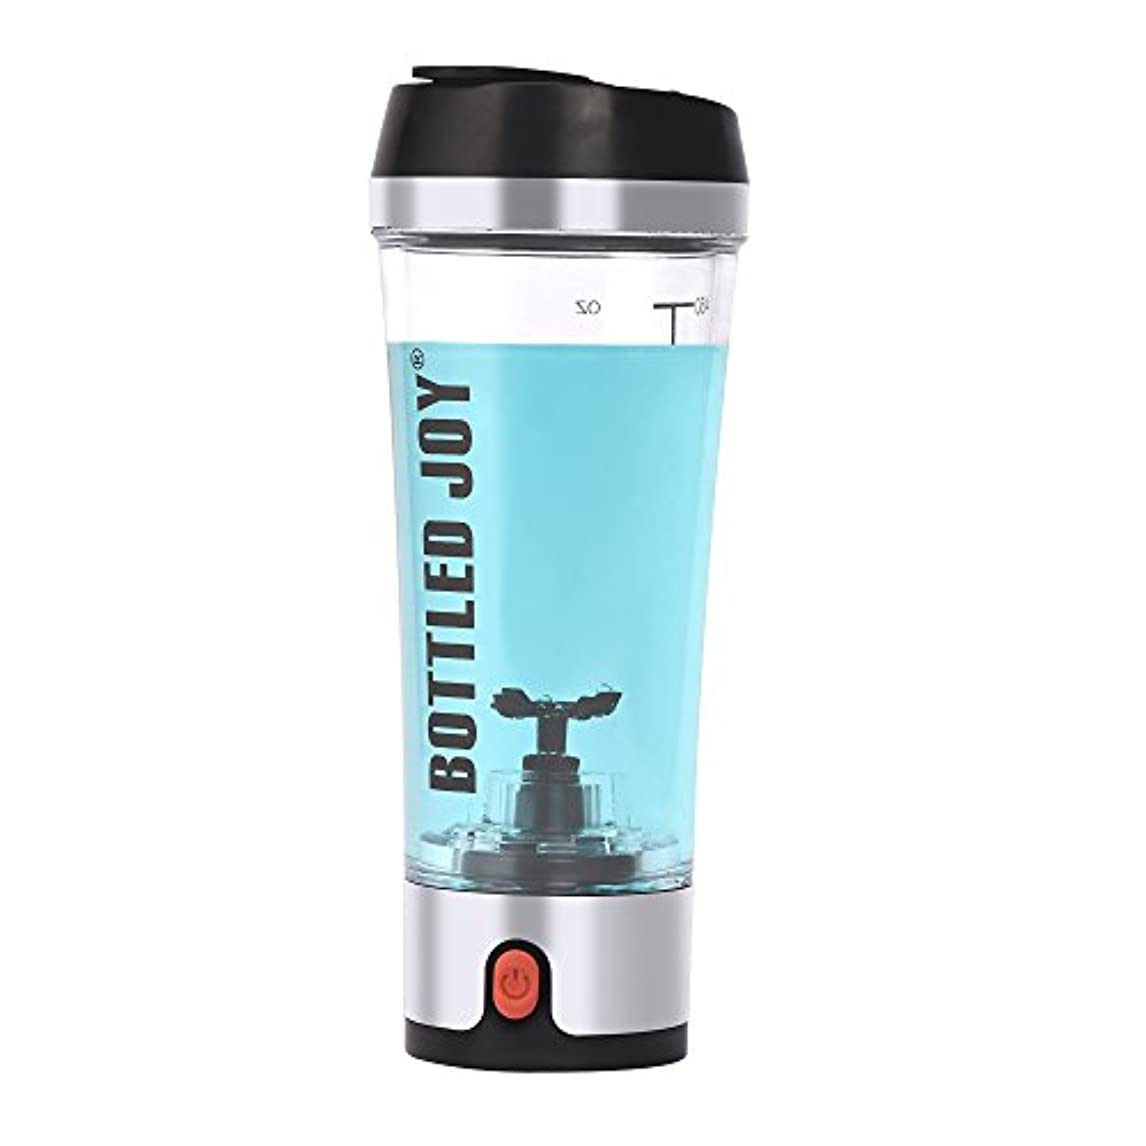 助けて樹木心理的にBottled Joy Electric Shaker Bottle、USB Rechargeable Protein Shaker、high-torque Stirring Blenderミキサーのスポーツマンと女性16oz...